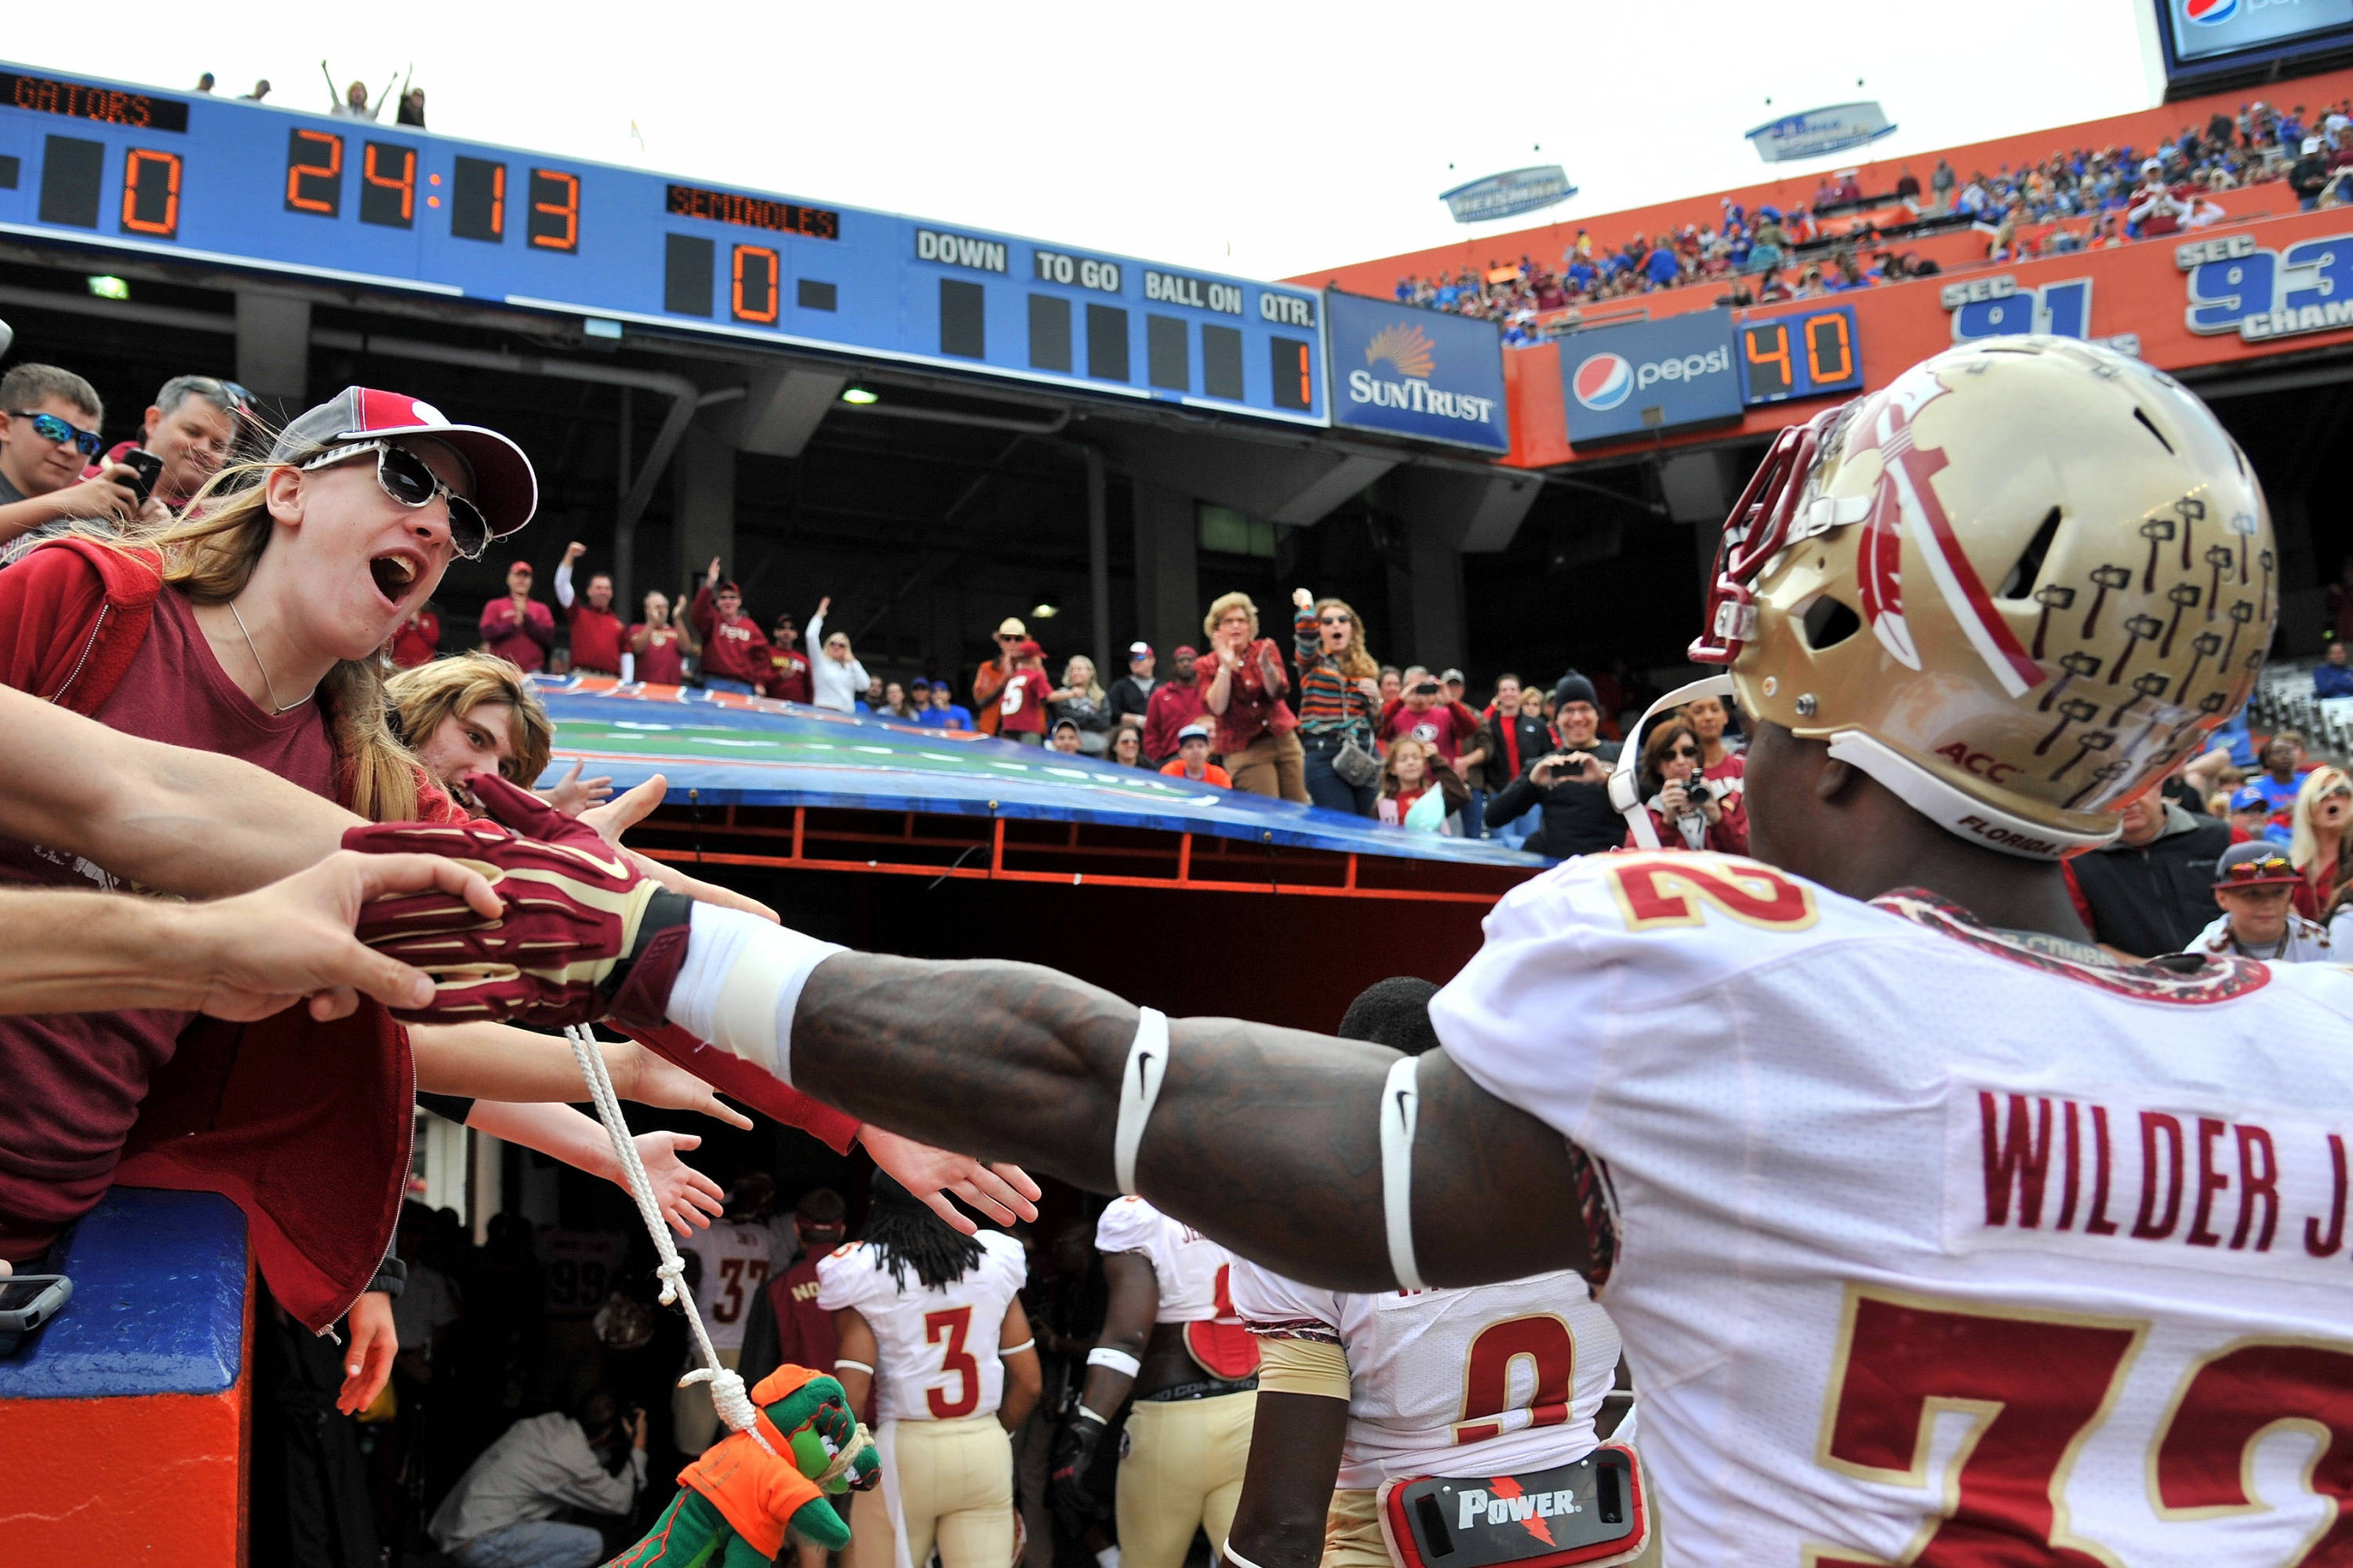 James Wilder Jr. (32) greets fans prior to a game. Mandatory Credit: Steve Mitchell-USA TODAY Sports